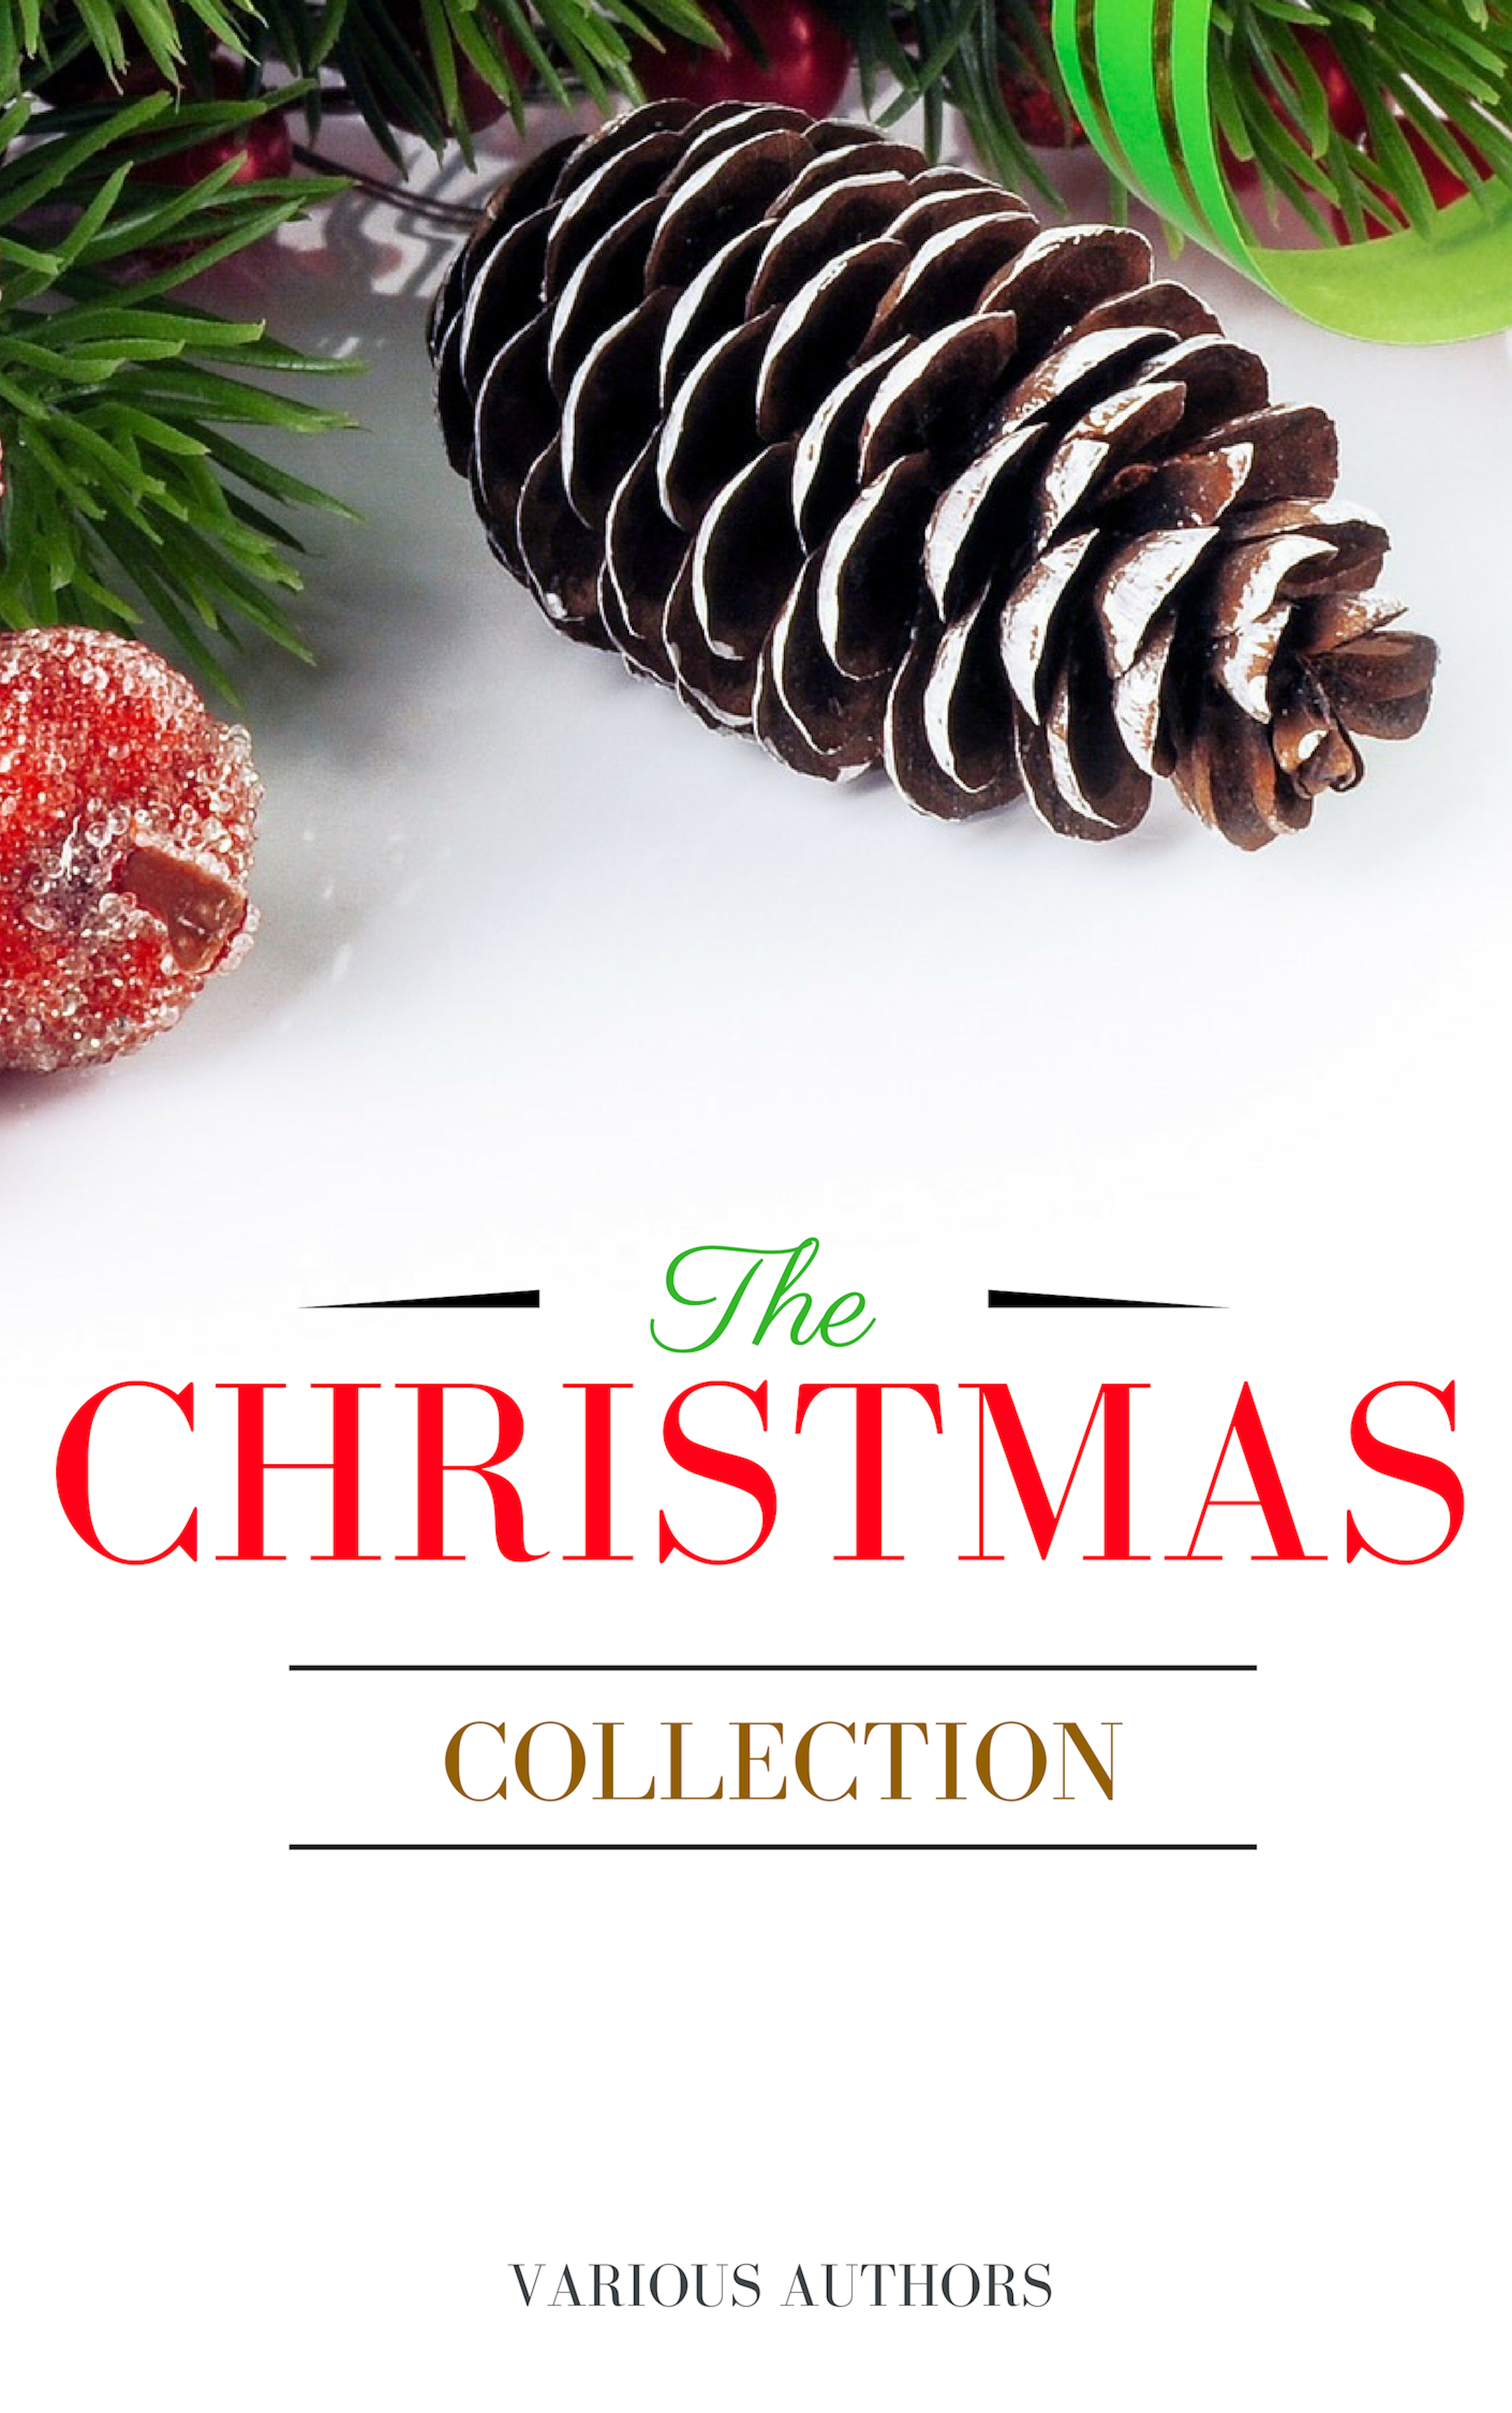 Лаймен Фрэнк Баум The Christmas Collection: All Of Your Favourite Classic Christmas Stories, Novels, Poems, Carols in One Ebook отсутствует christmas carols and hymns of all time